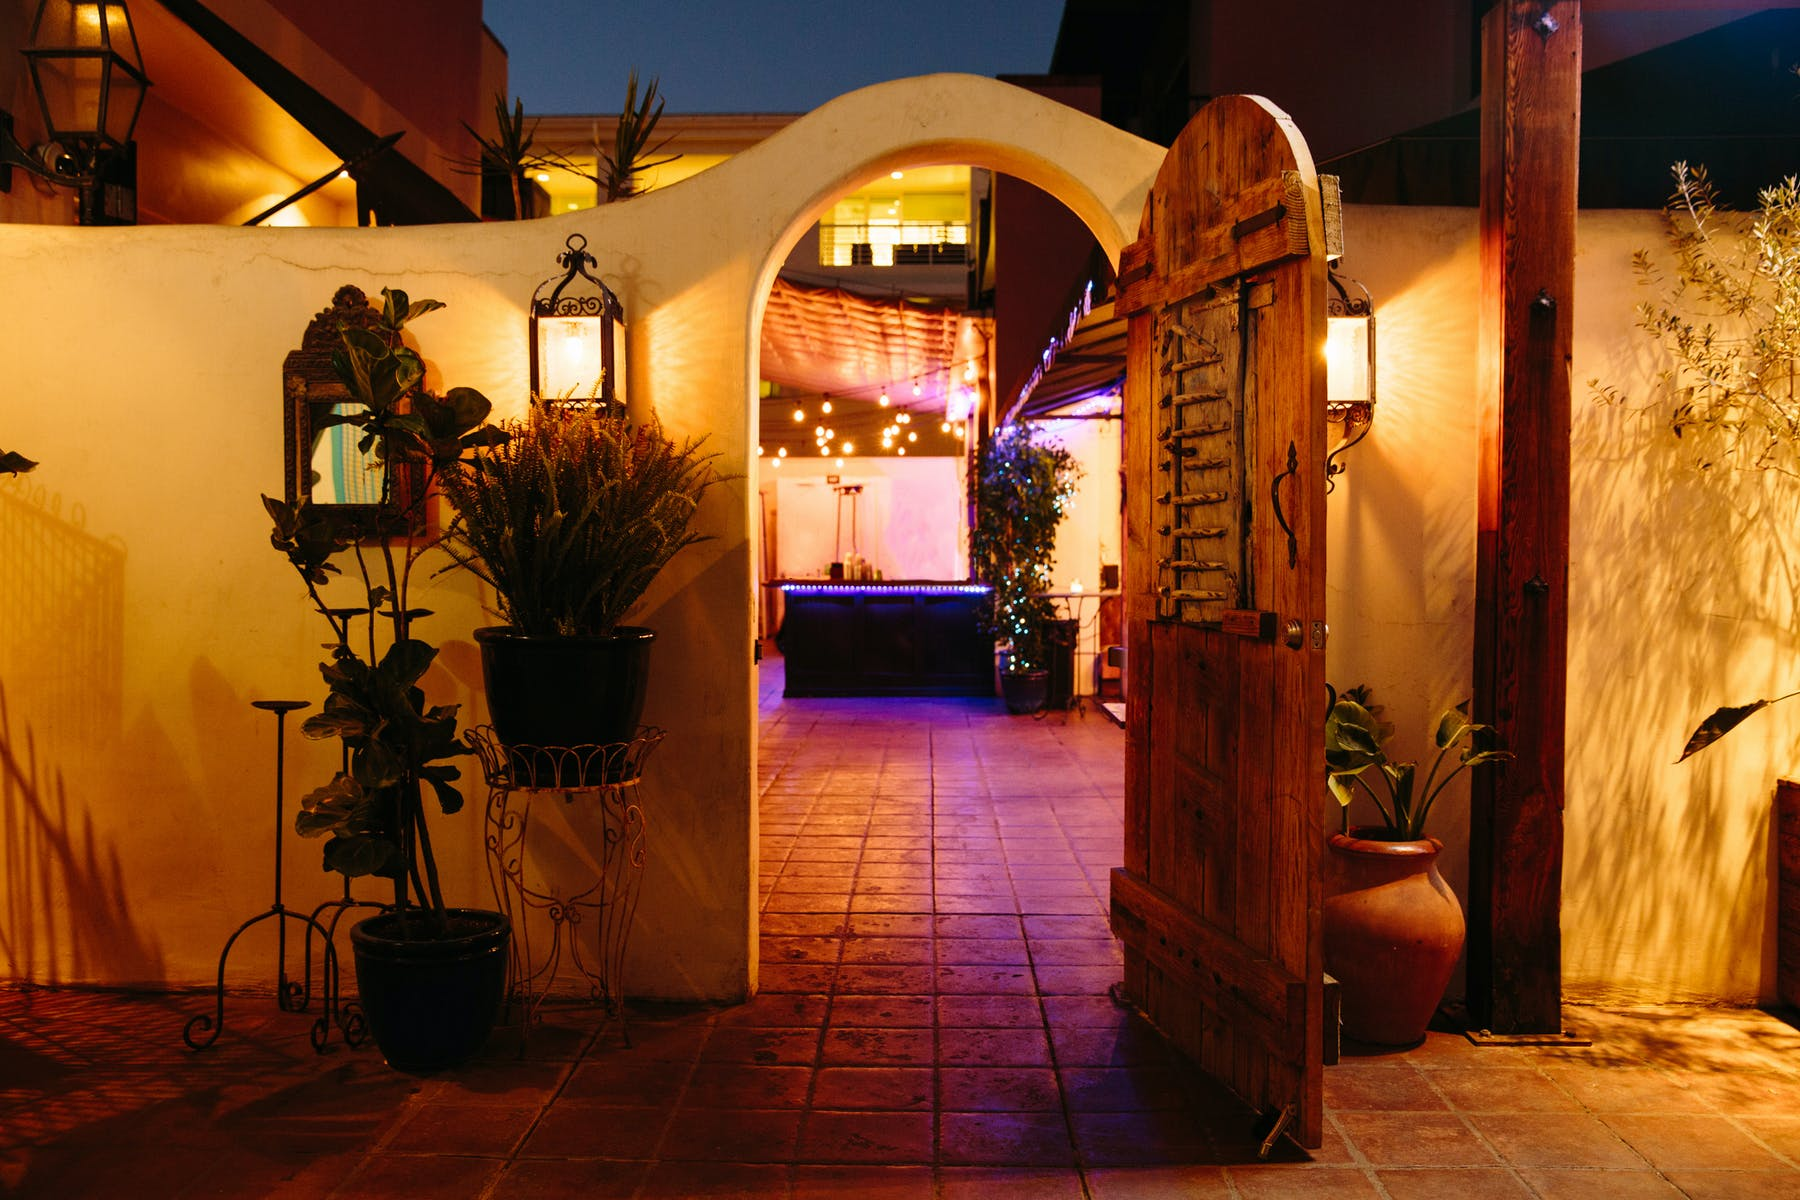 an entrance gate to an exterior patio litten up by a purple light